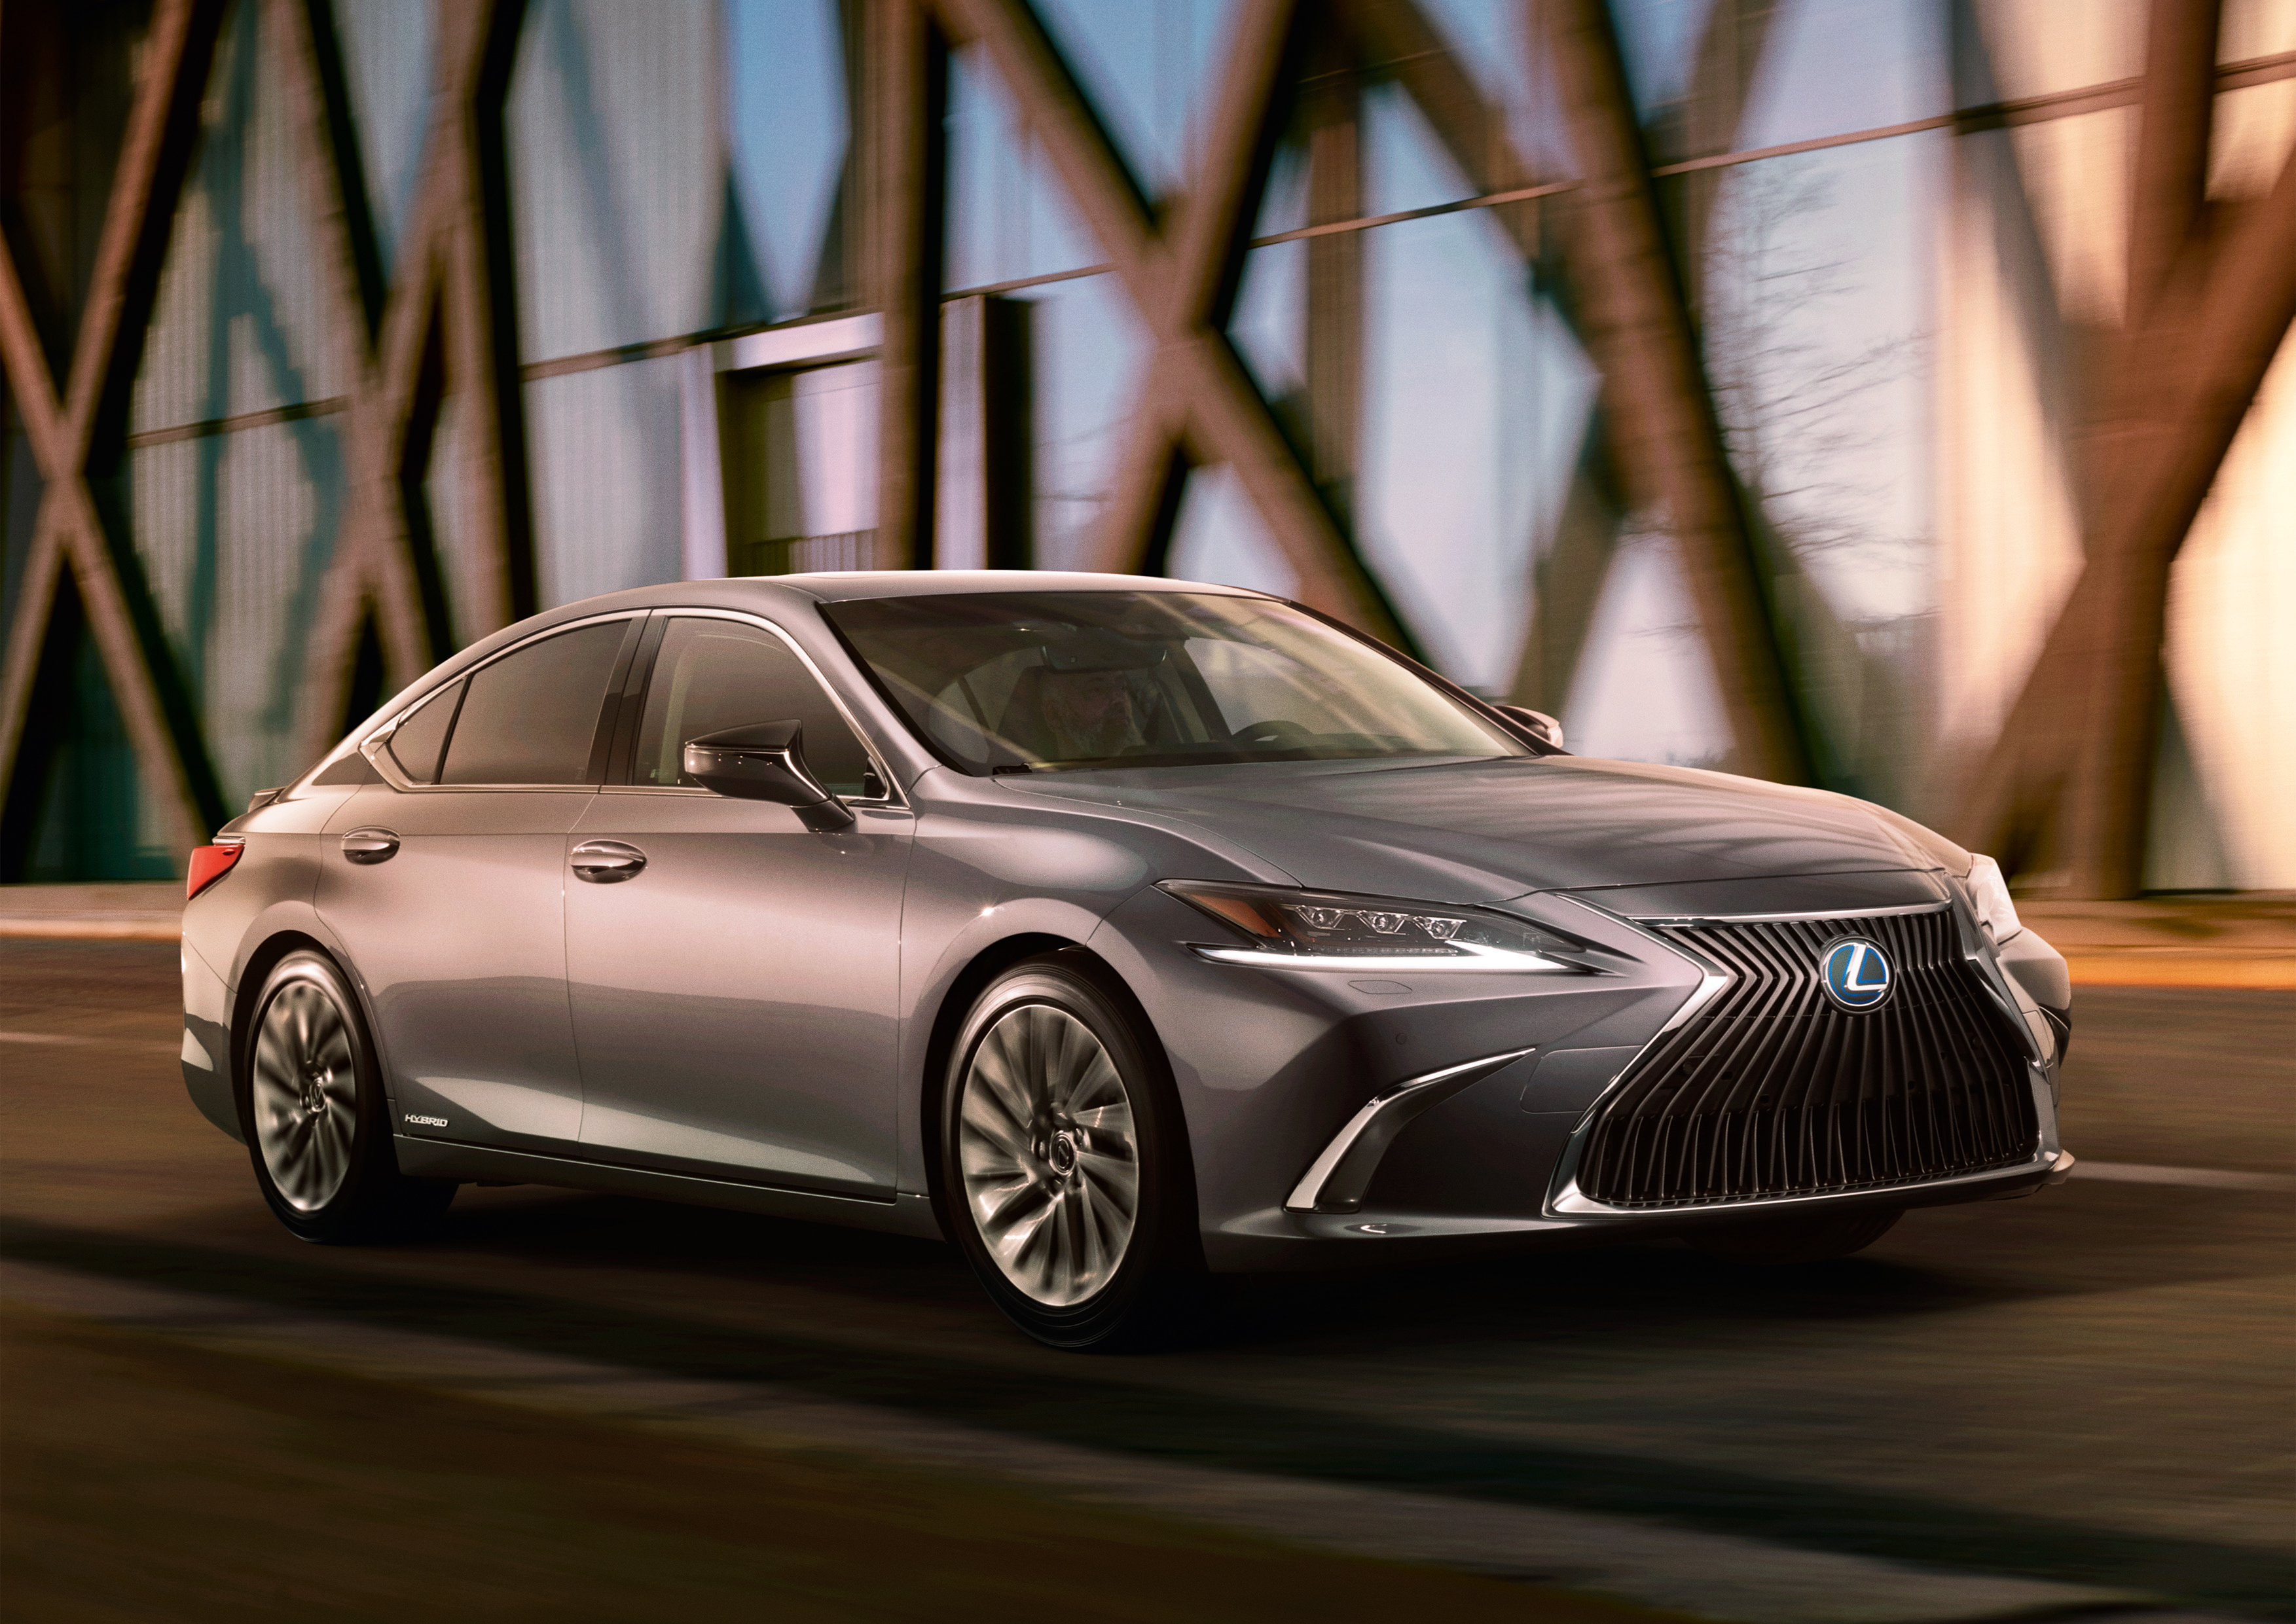 img november on posted luxury specs price hybrid lexus india in the wheelz date launch unveils